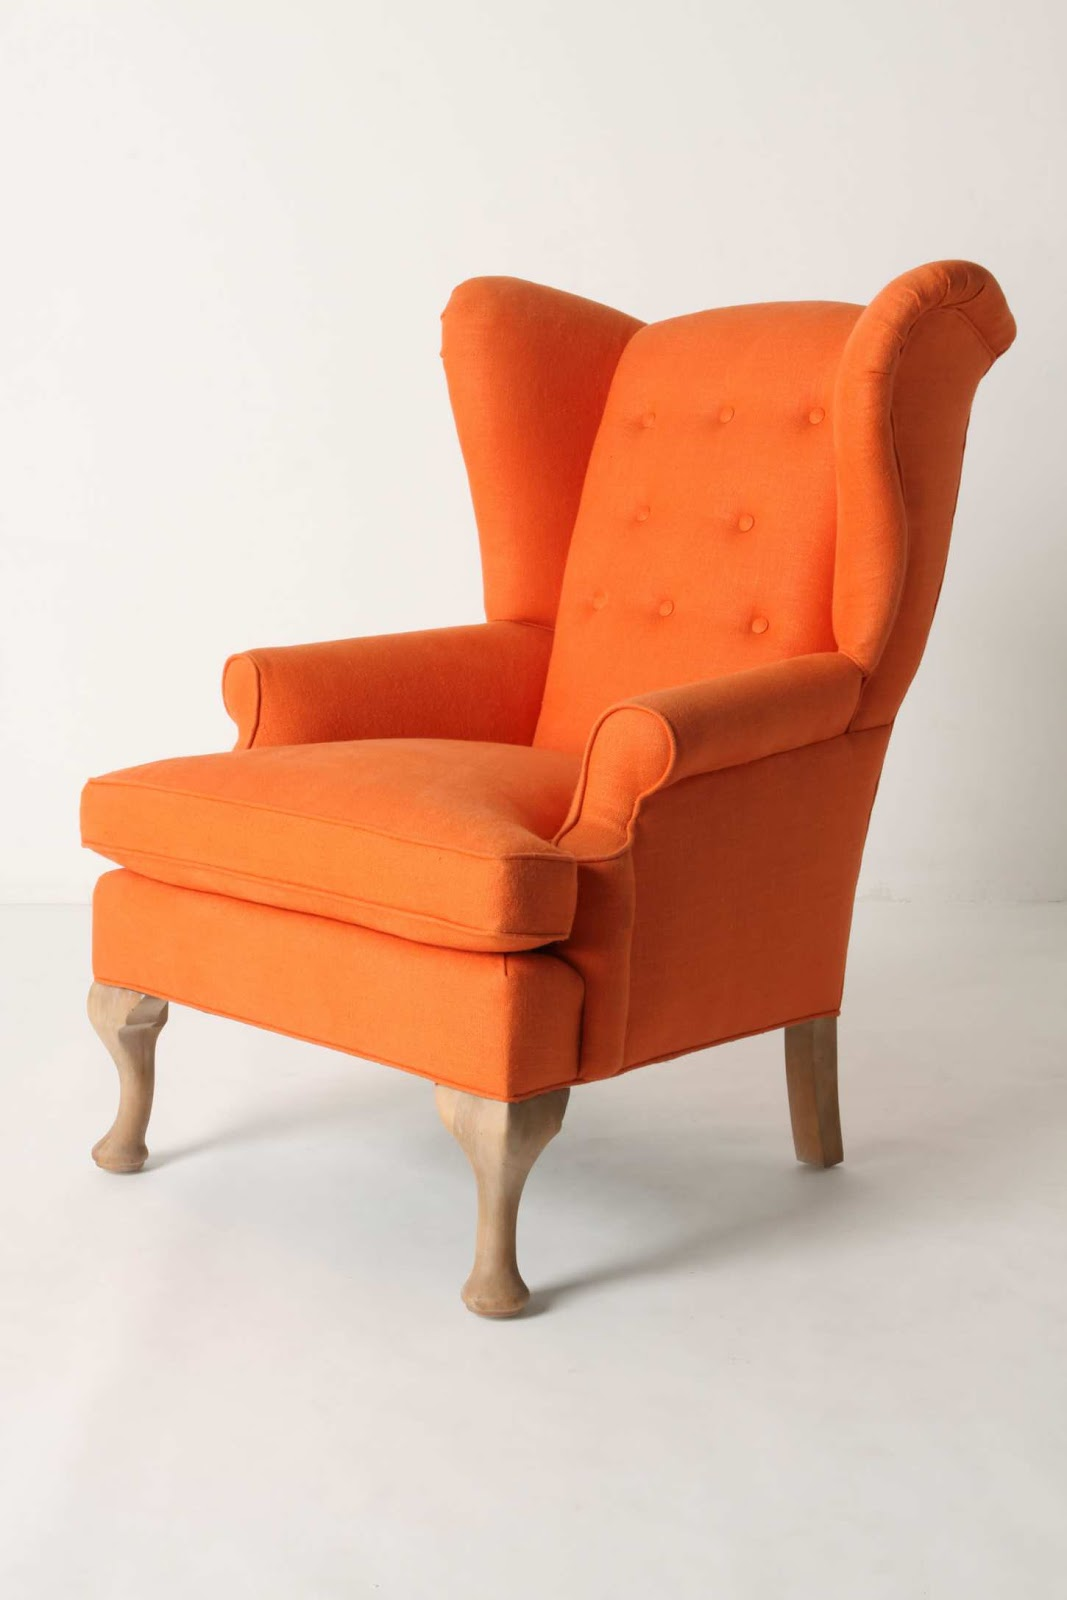 Wing Back Chairs 10 Wing Back Chair Design Ideas For Living Room Interior